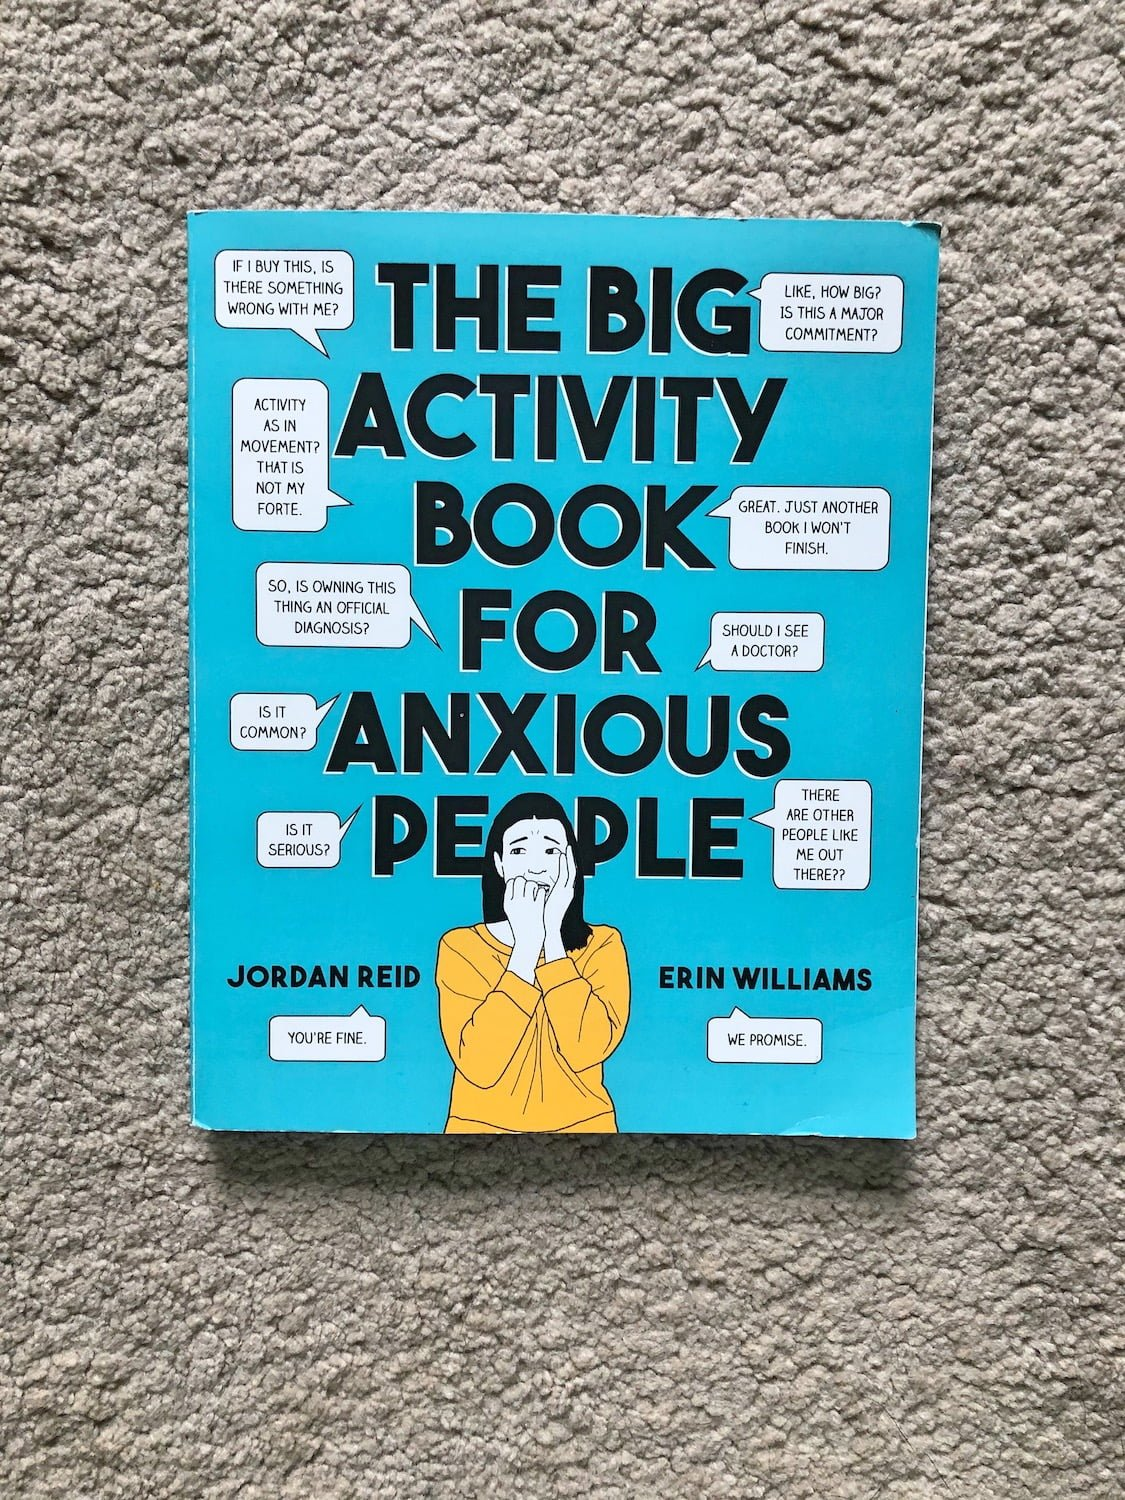 Anya Reads - The Big Activity Book for Anxious People